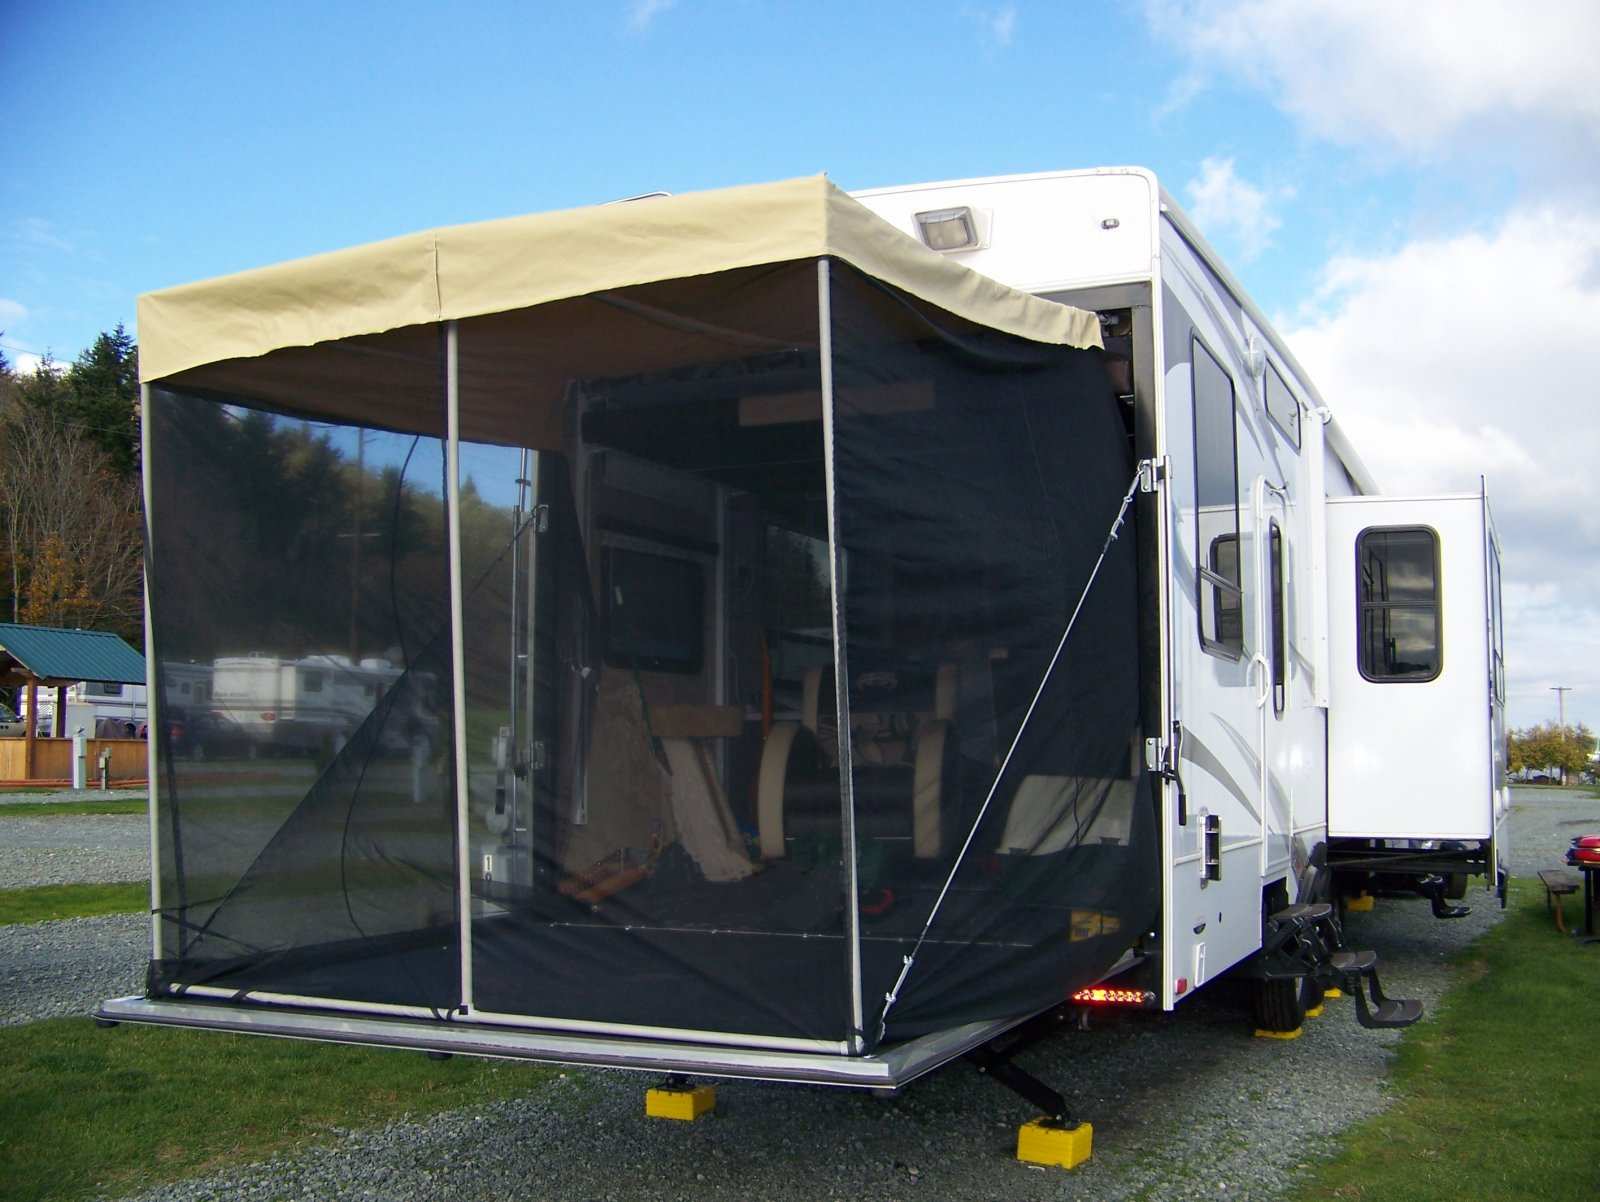 Rv Ramp Screened In Porch Photos Irv2 Forums